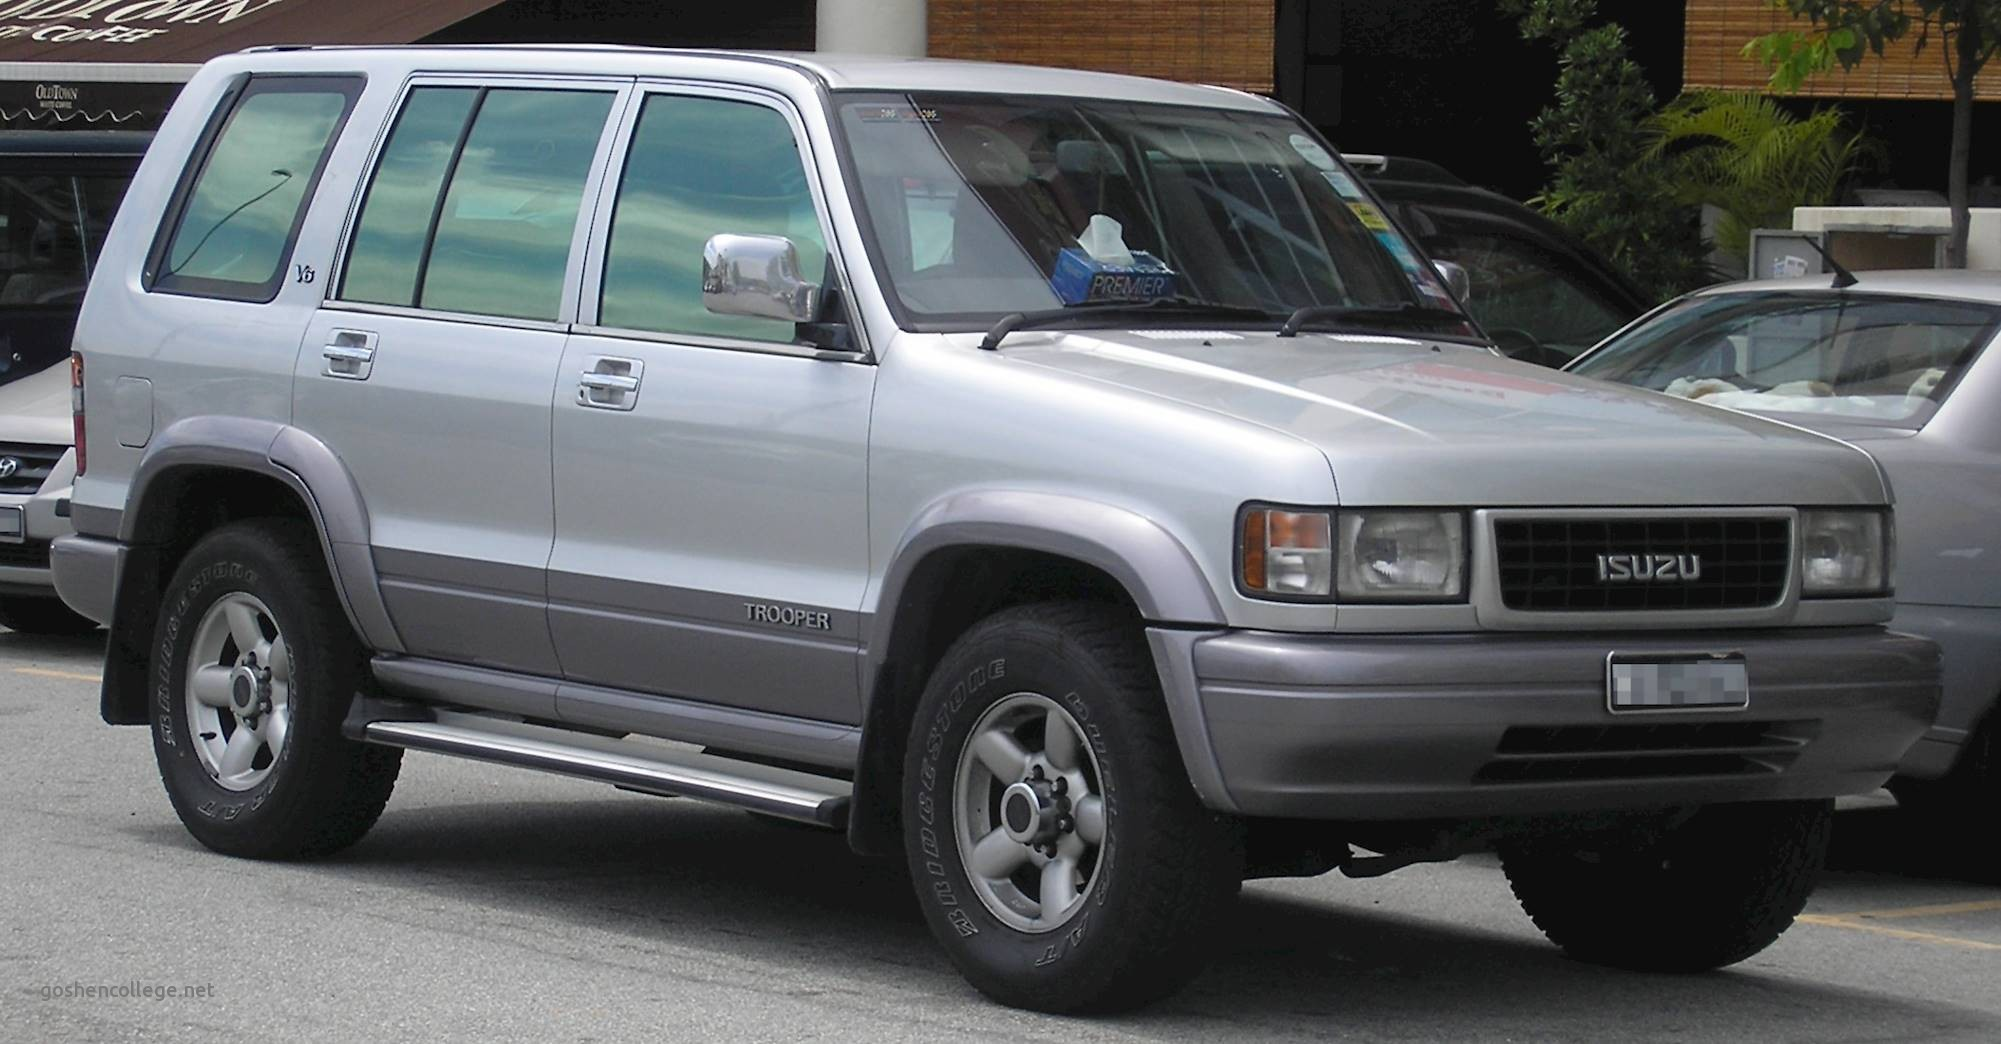 Isuzu Rodeo 2 Wheel Drive Luxury 2002 isuzu Rodeo S 2 2l 4dr 4—2